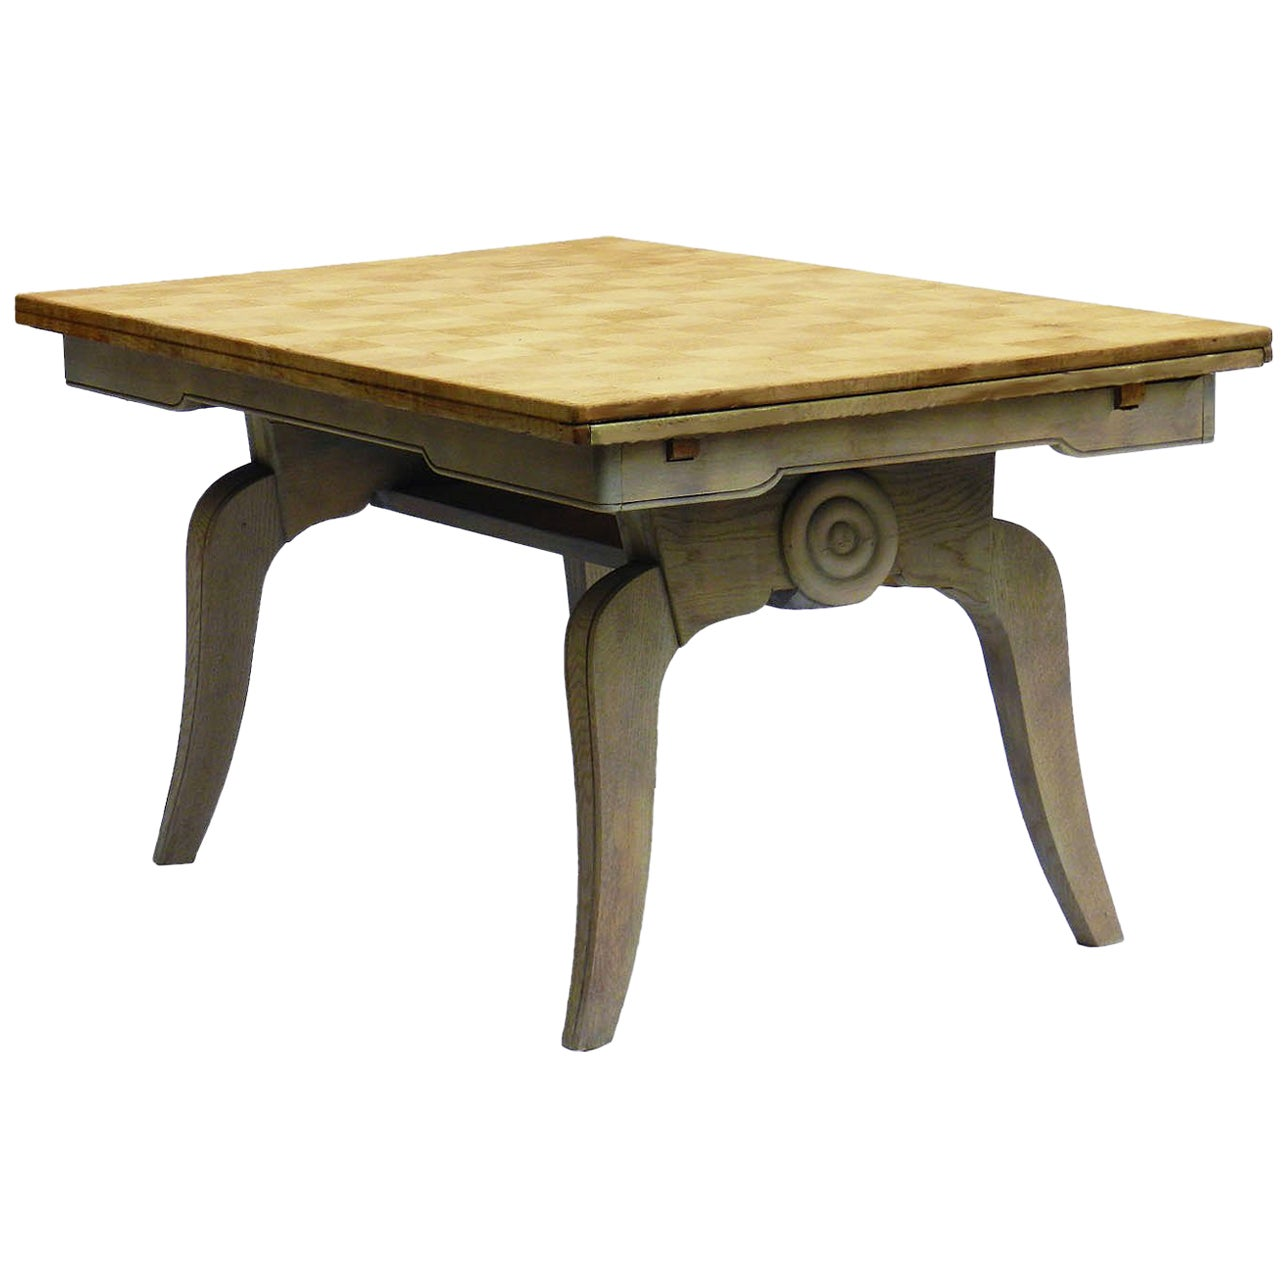 Midcentury Dining Table French Extending Drawer Leaf Bleached Oak